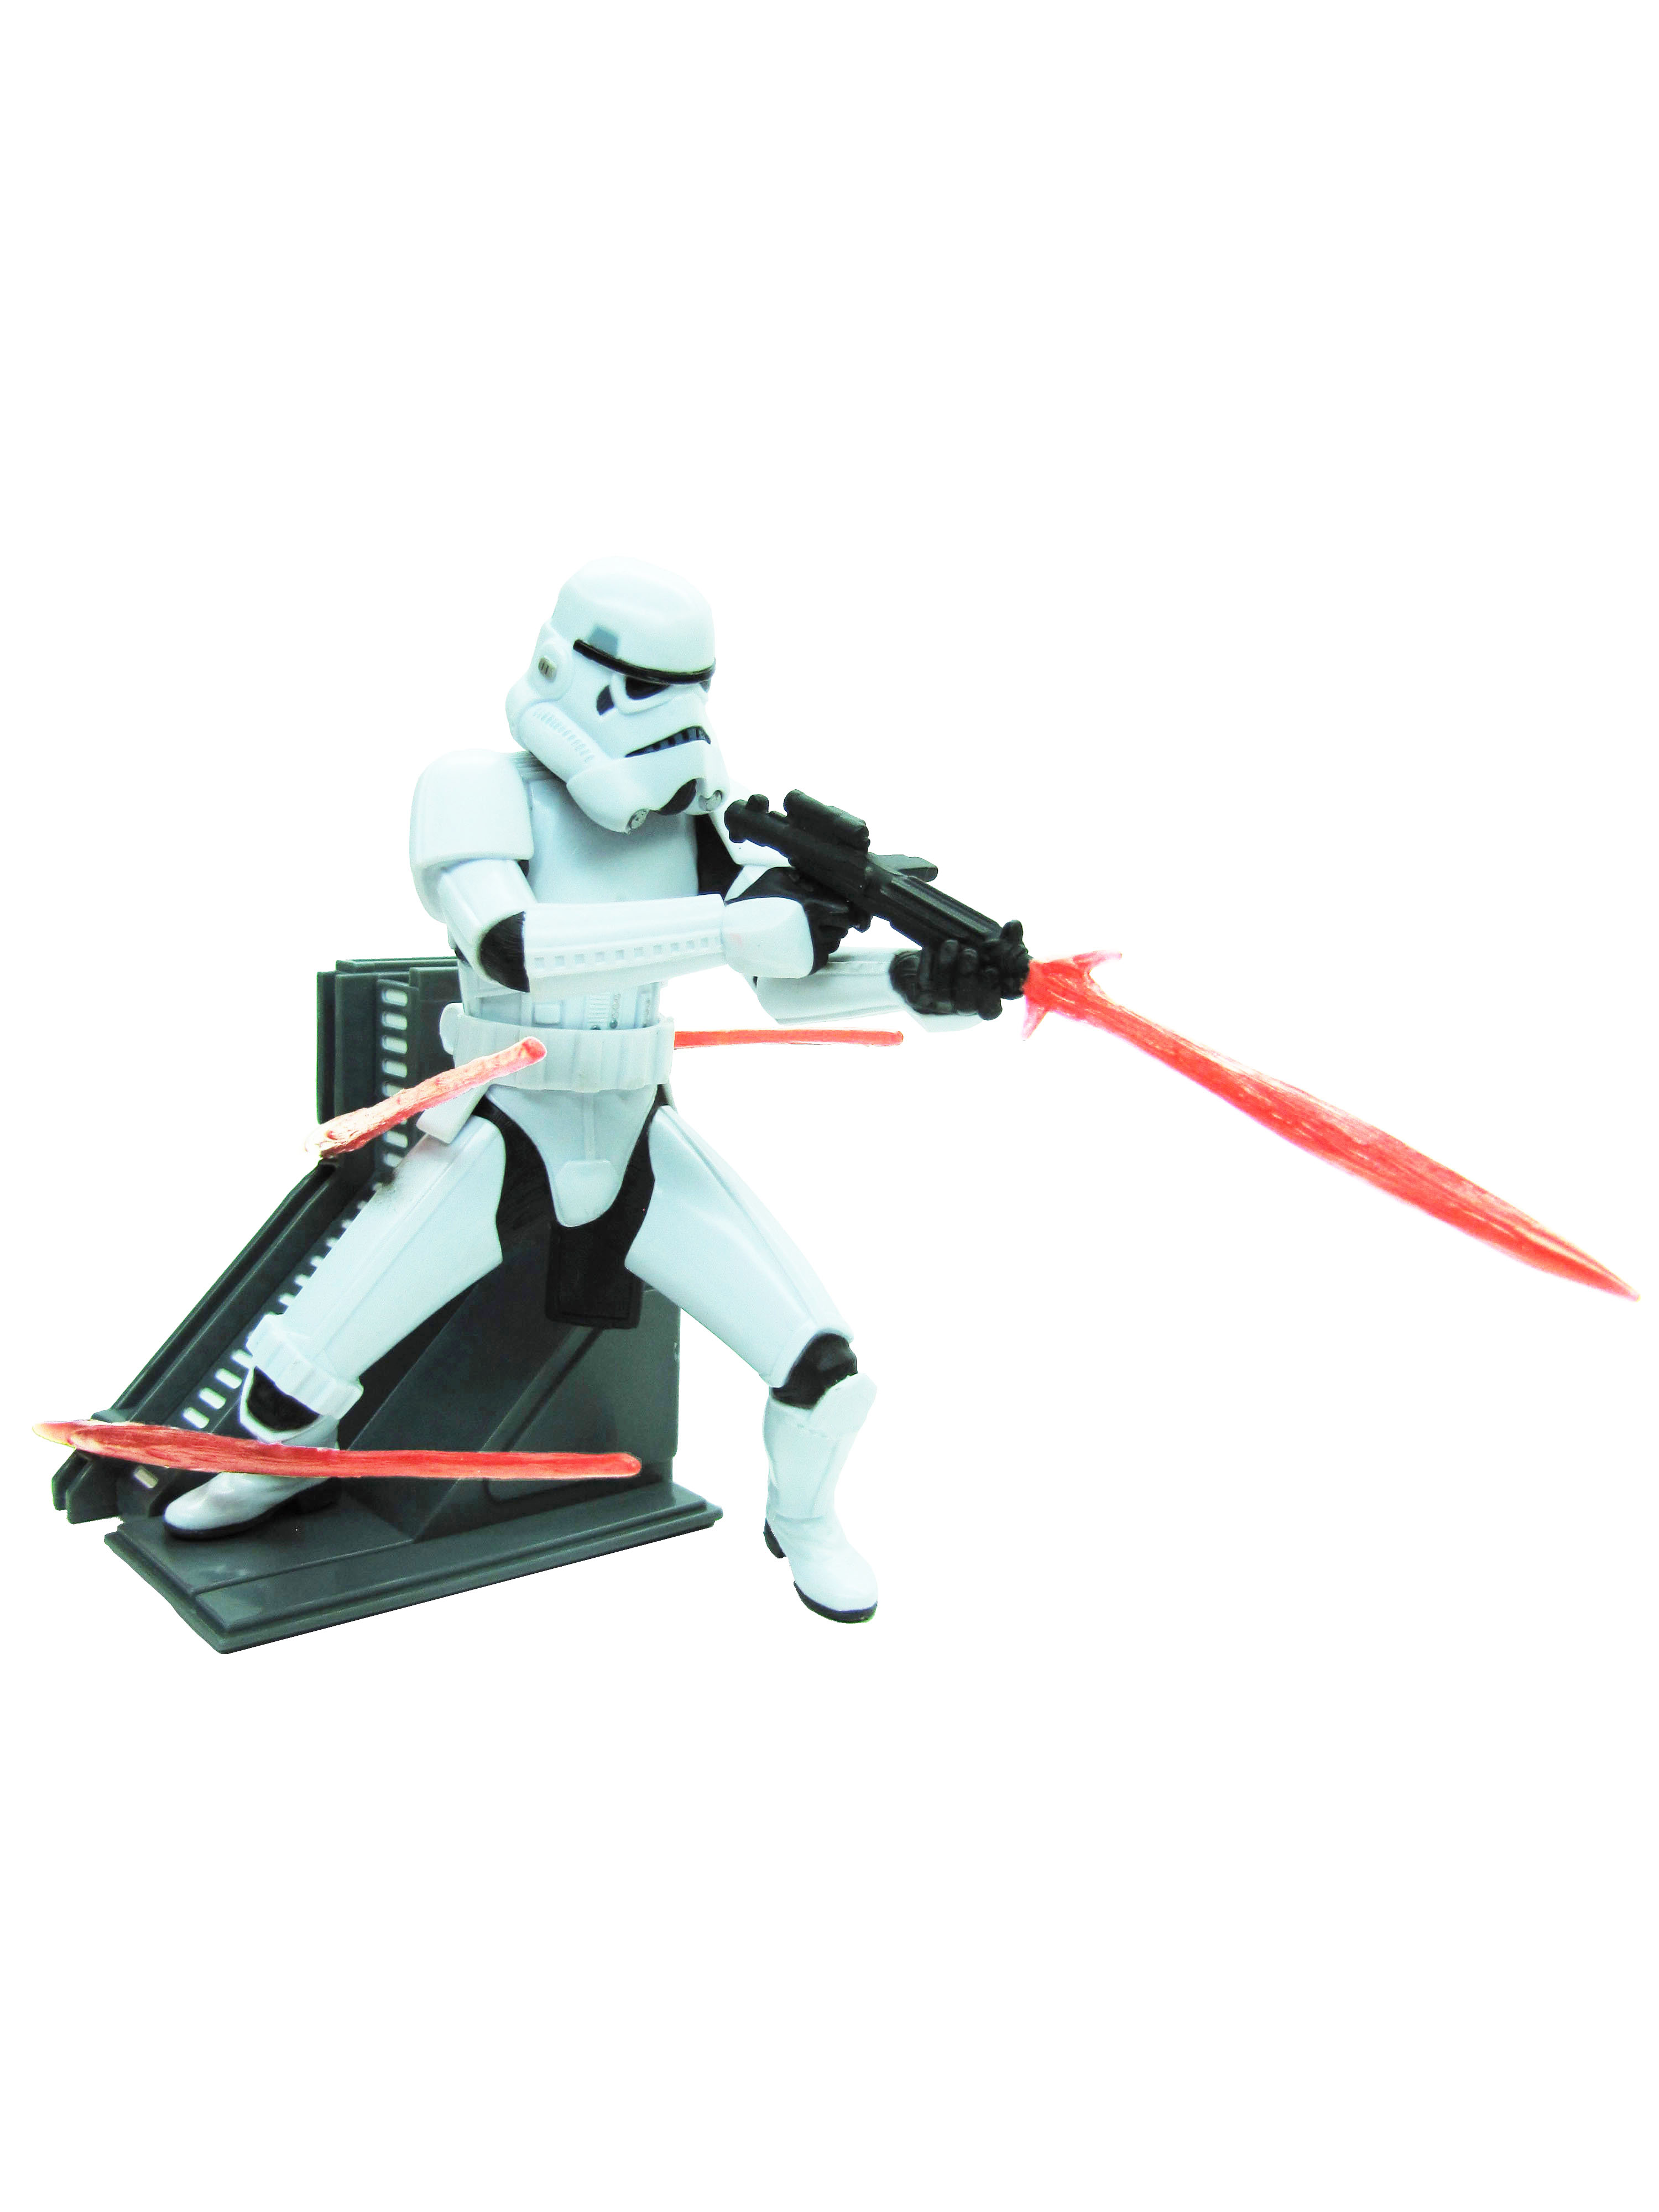 2005 Star Wars Unleashed STORMTROOPER Complete